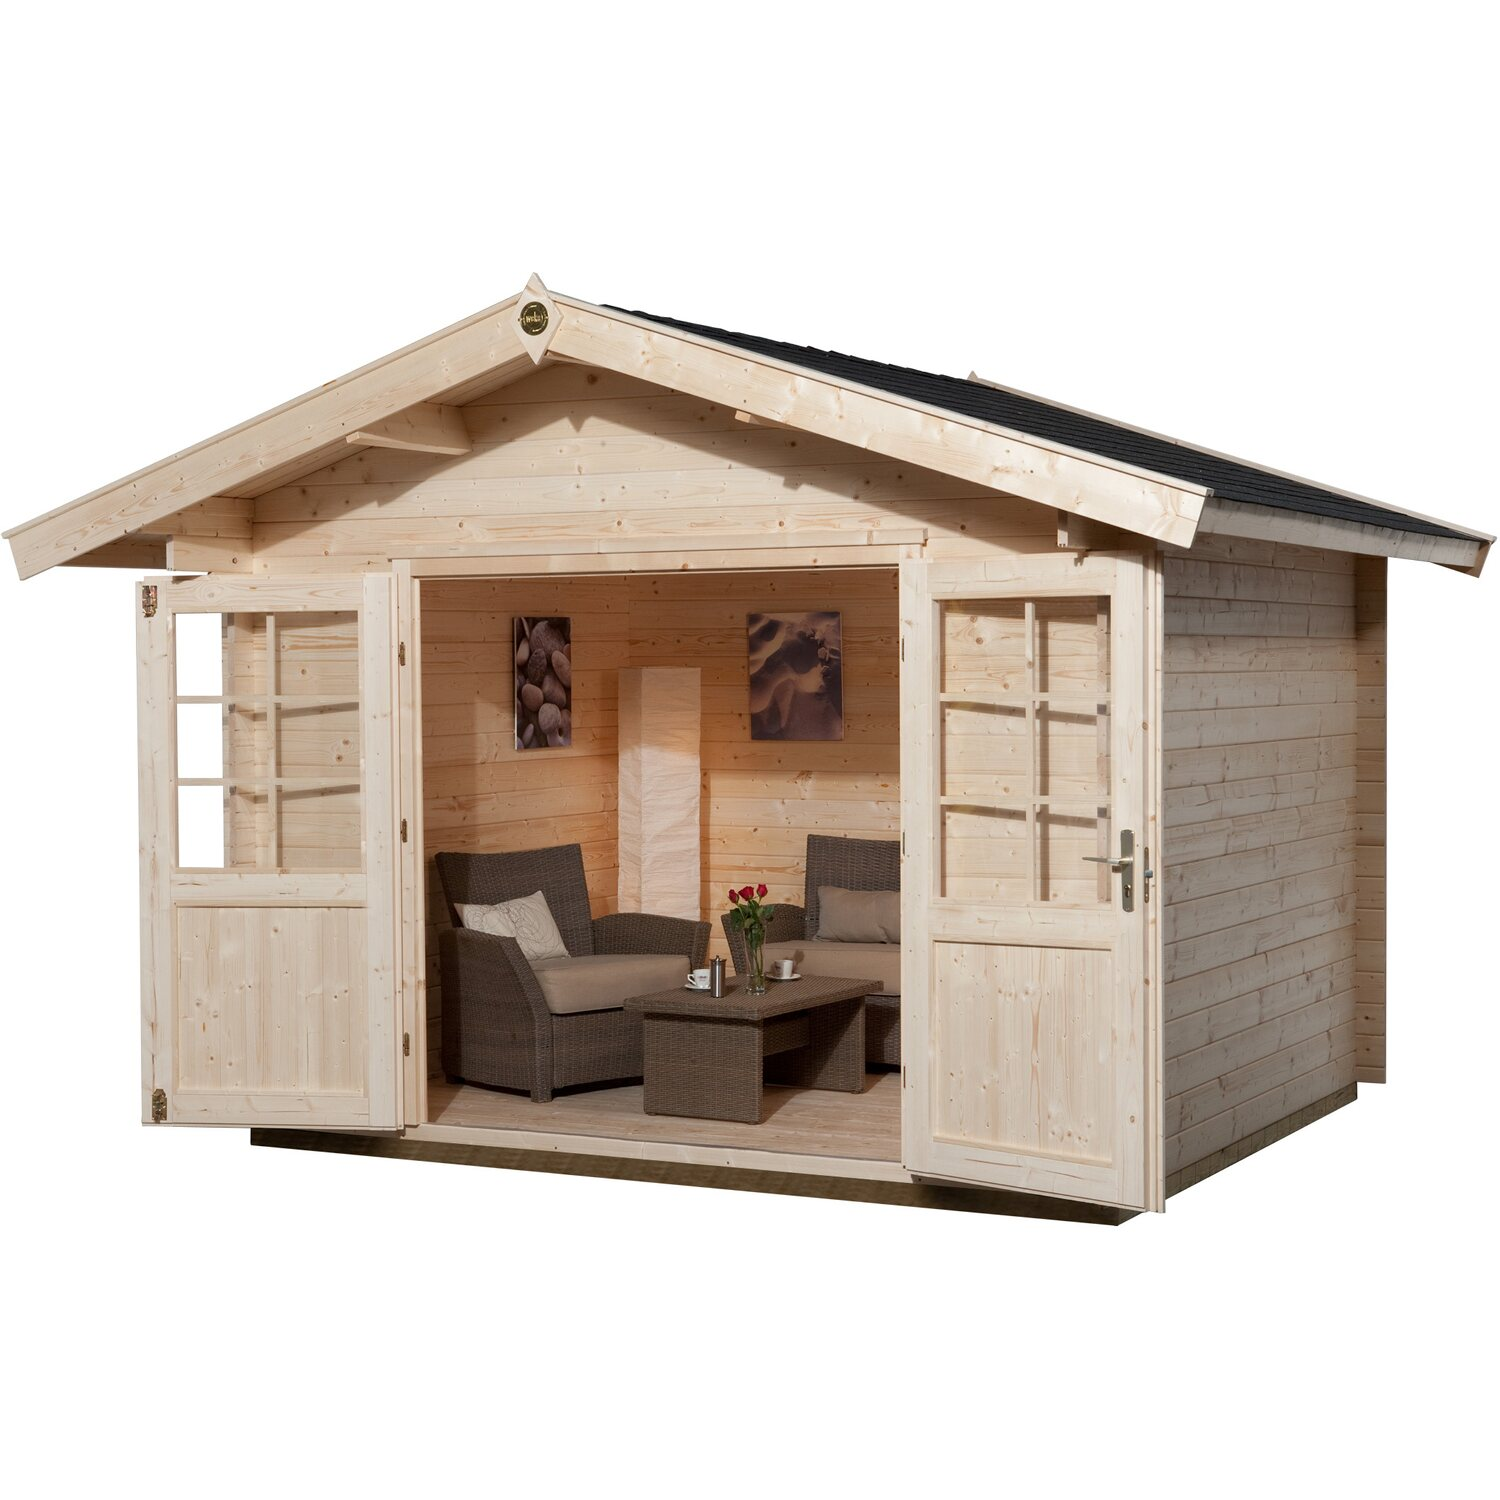 weka holz gartenhaus ferrara 1 naturbelassen bxt 250 cm x 250 cm kaufen bei obi. Black Bedroom Furniture Sets. Home Design Ideas